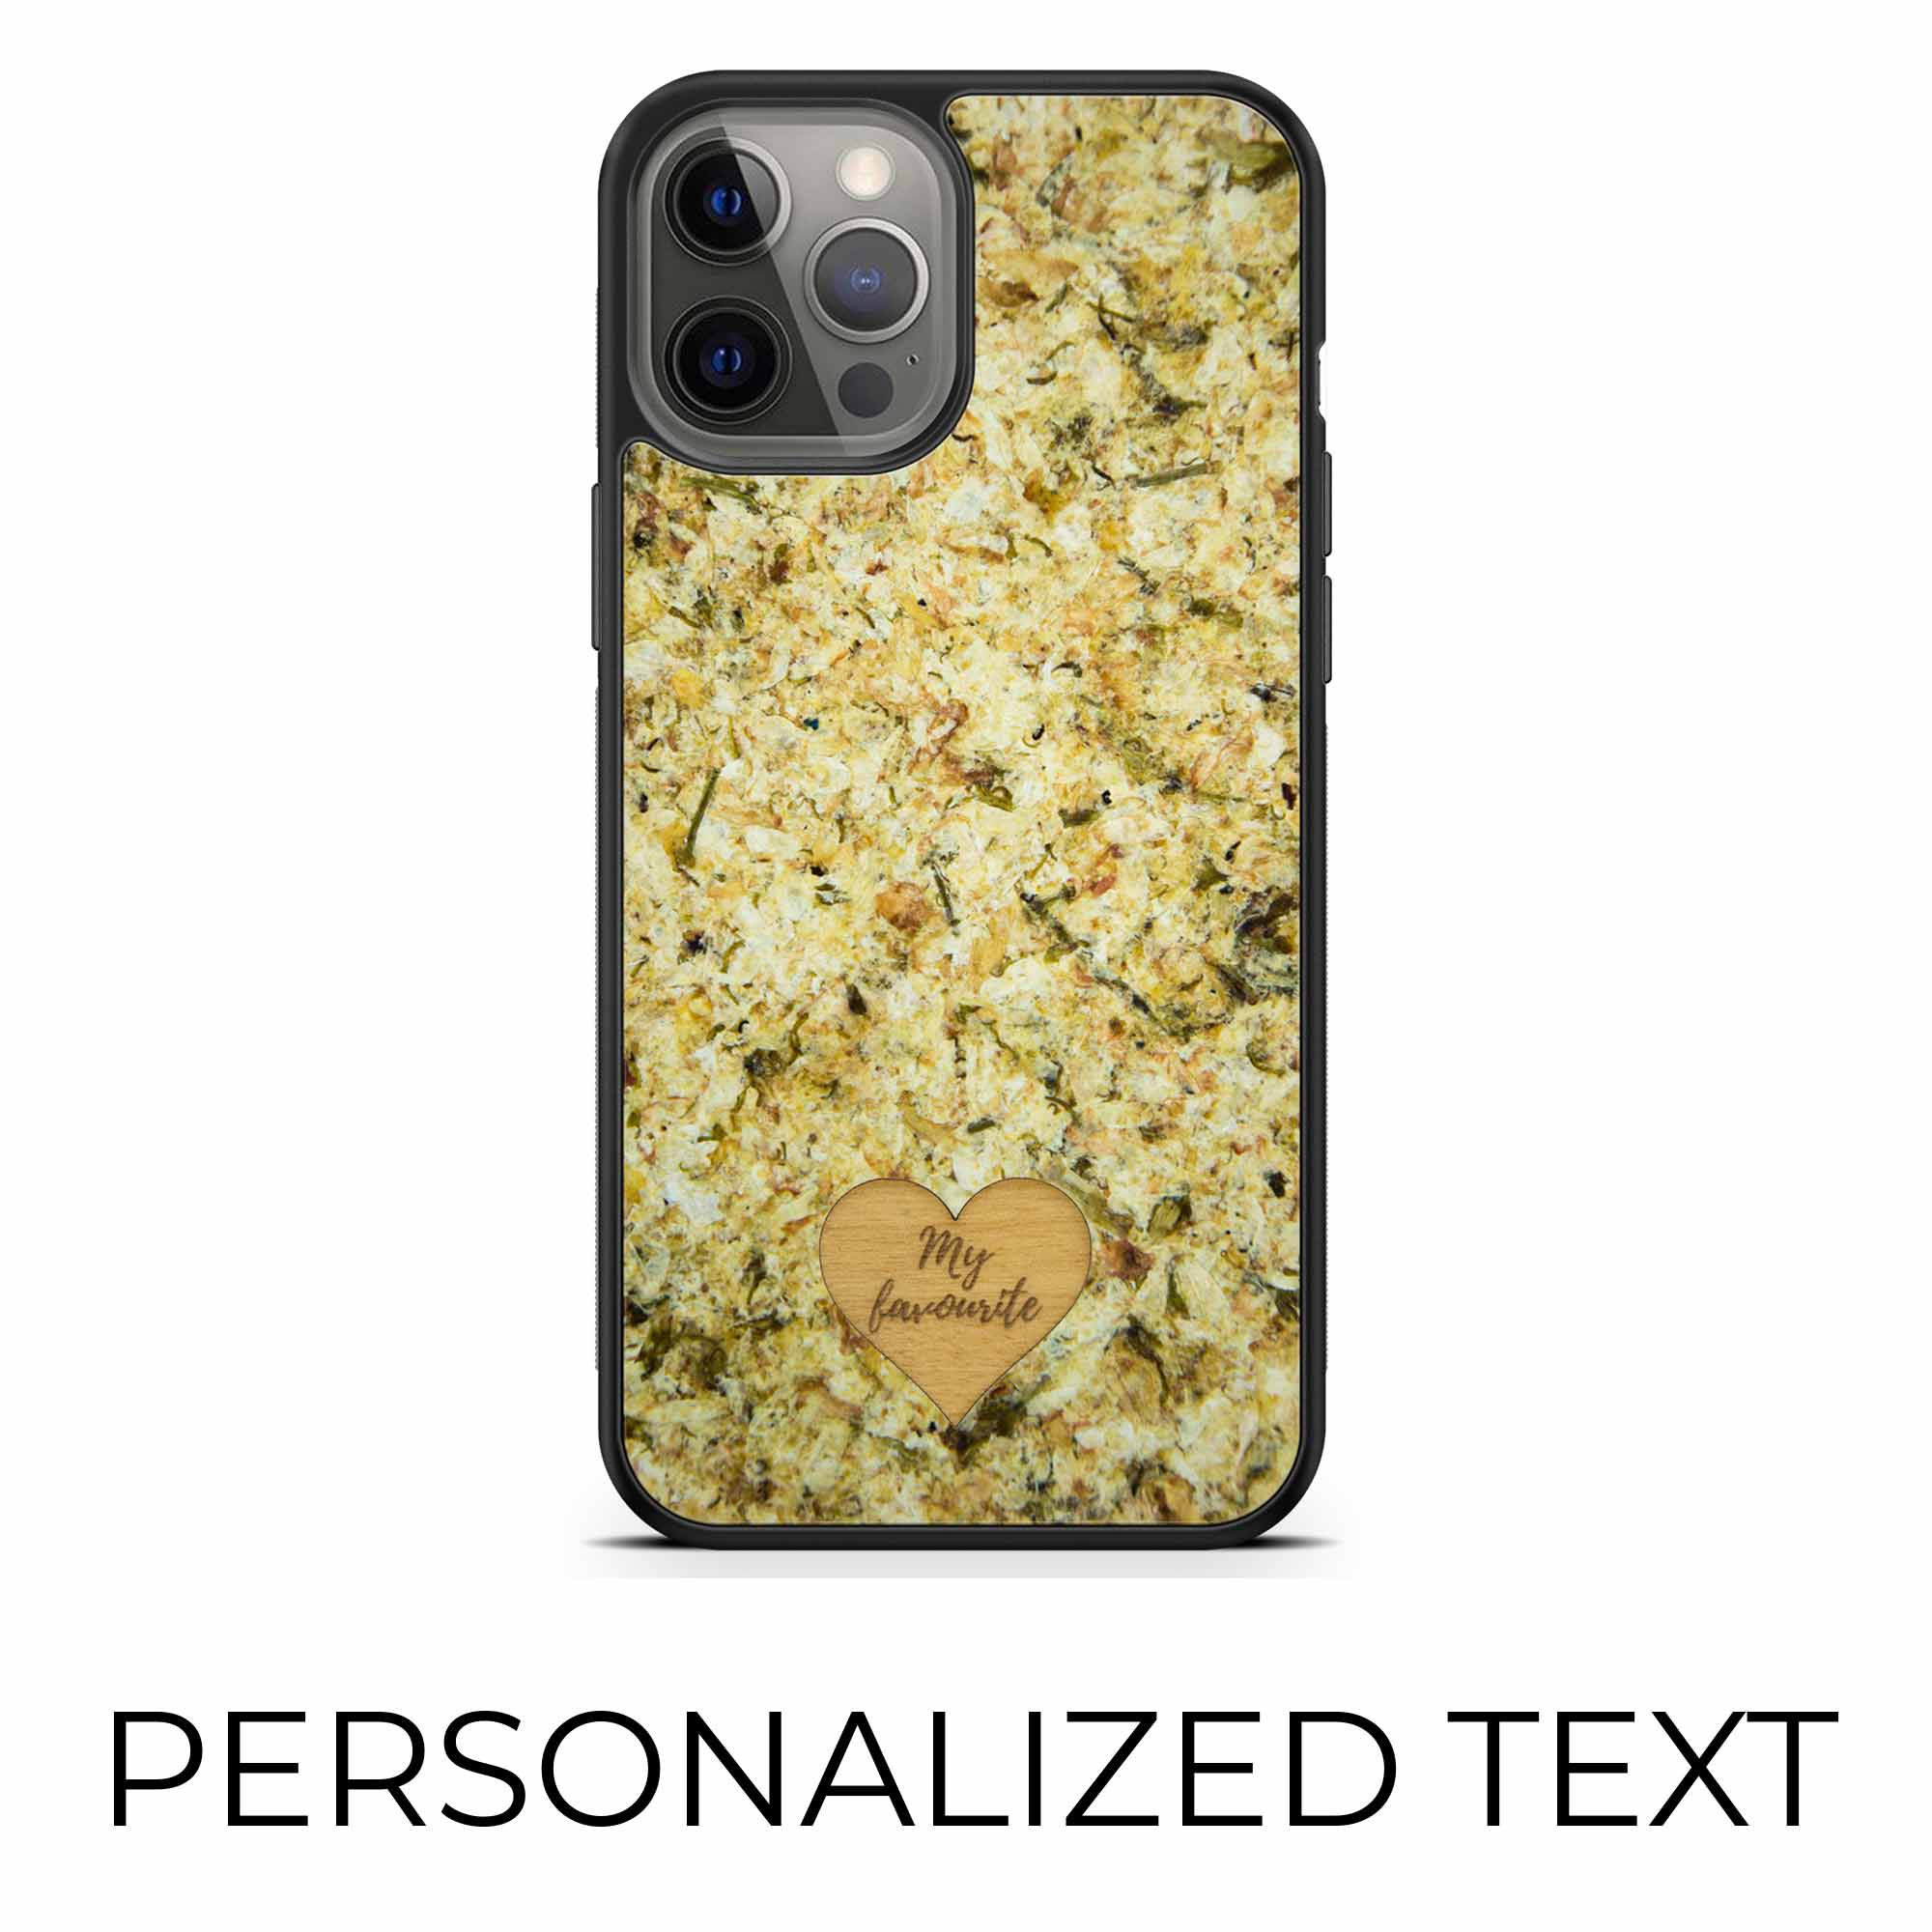 Jasmine - Personalized phone case - Personalized gift